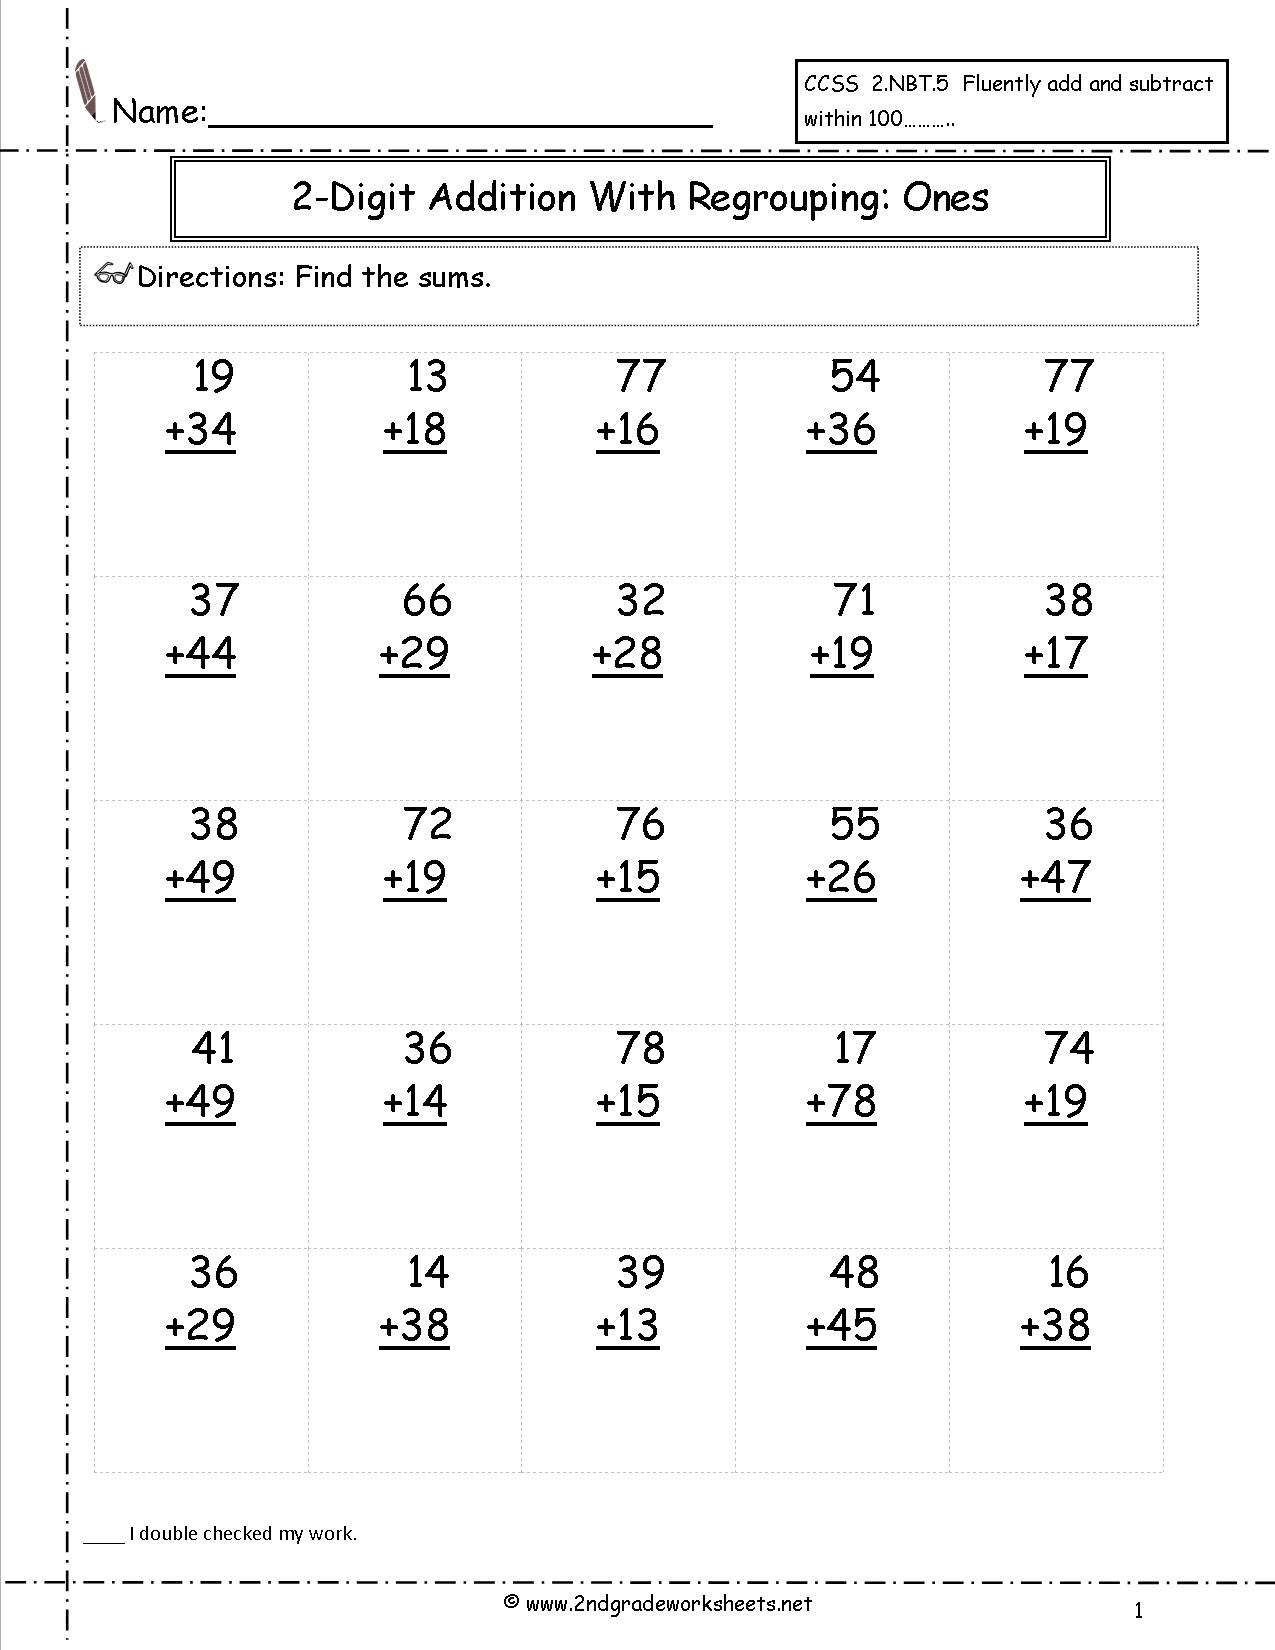 Free Math Worksheets And Printouts - Free Printable Subtraction | Printable Subtraction Worksheets